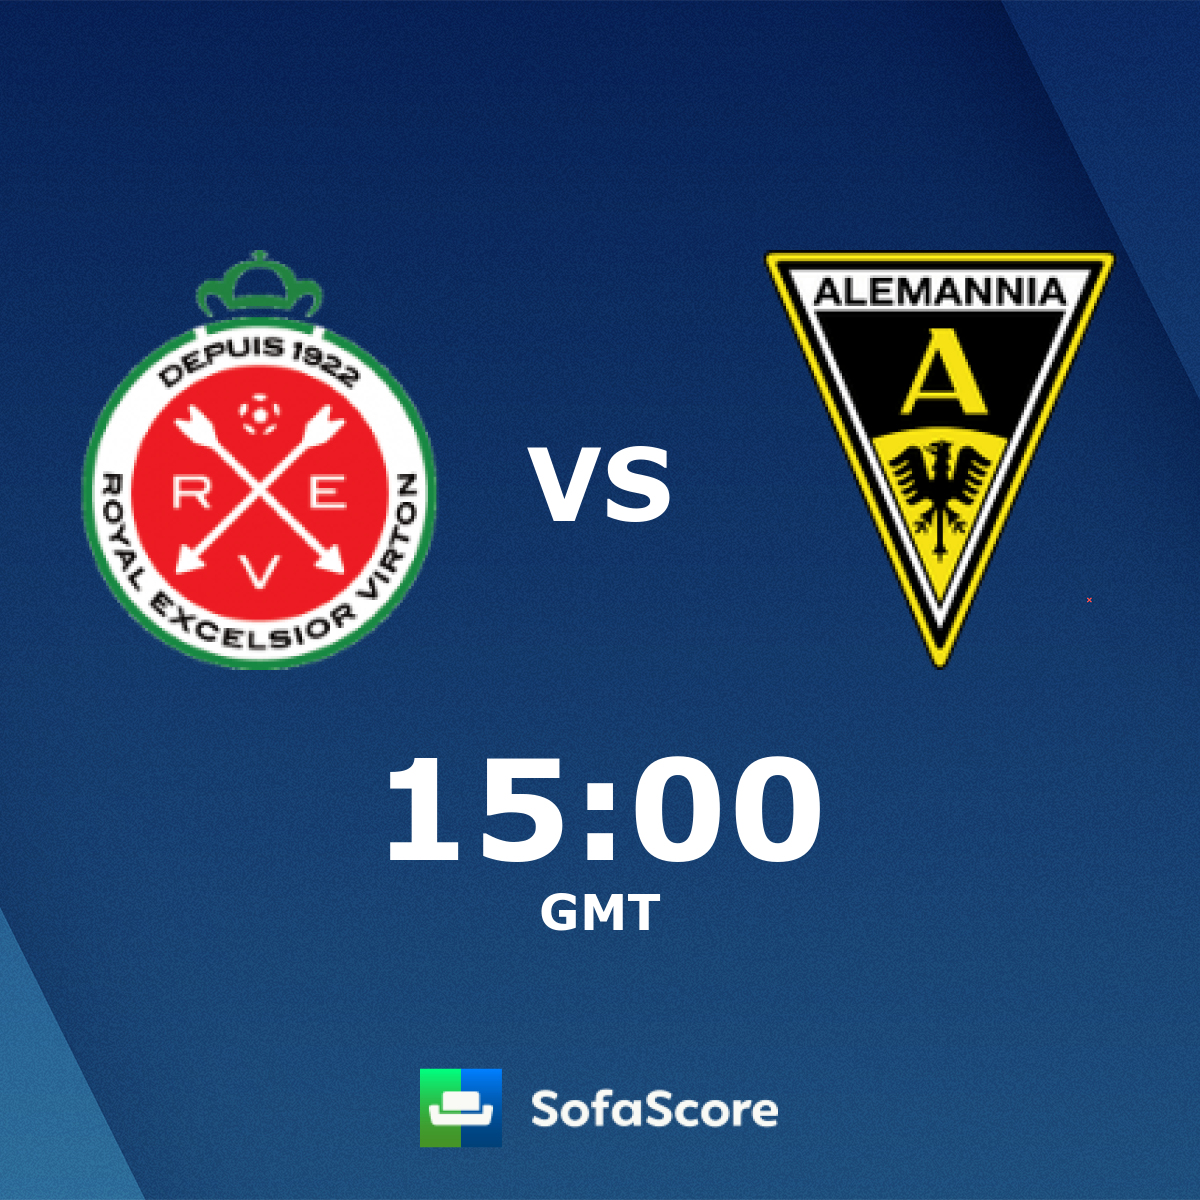 Royal Excelsior Virton Alemannia Aachen live score, video stream and